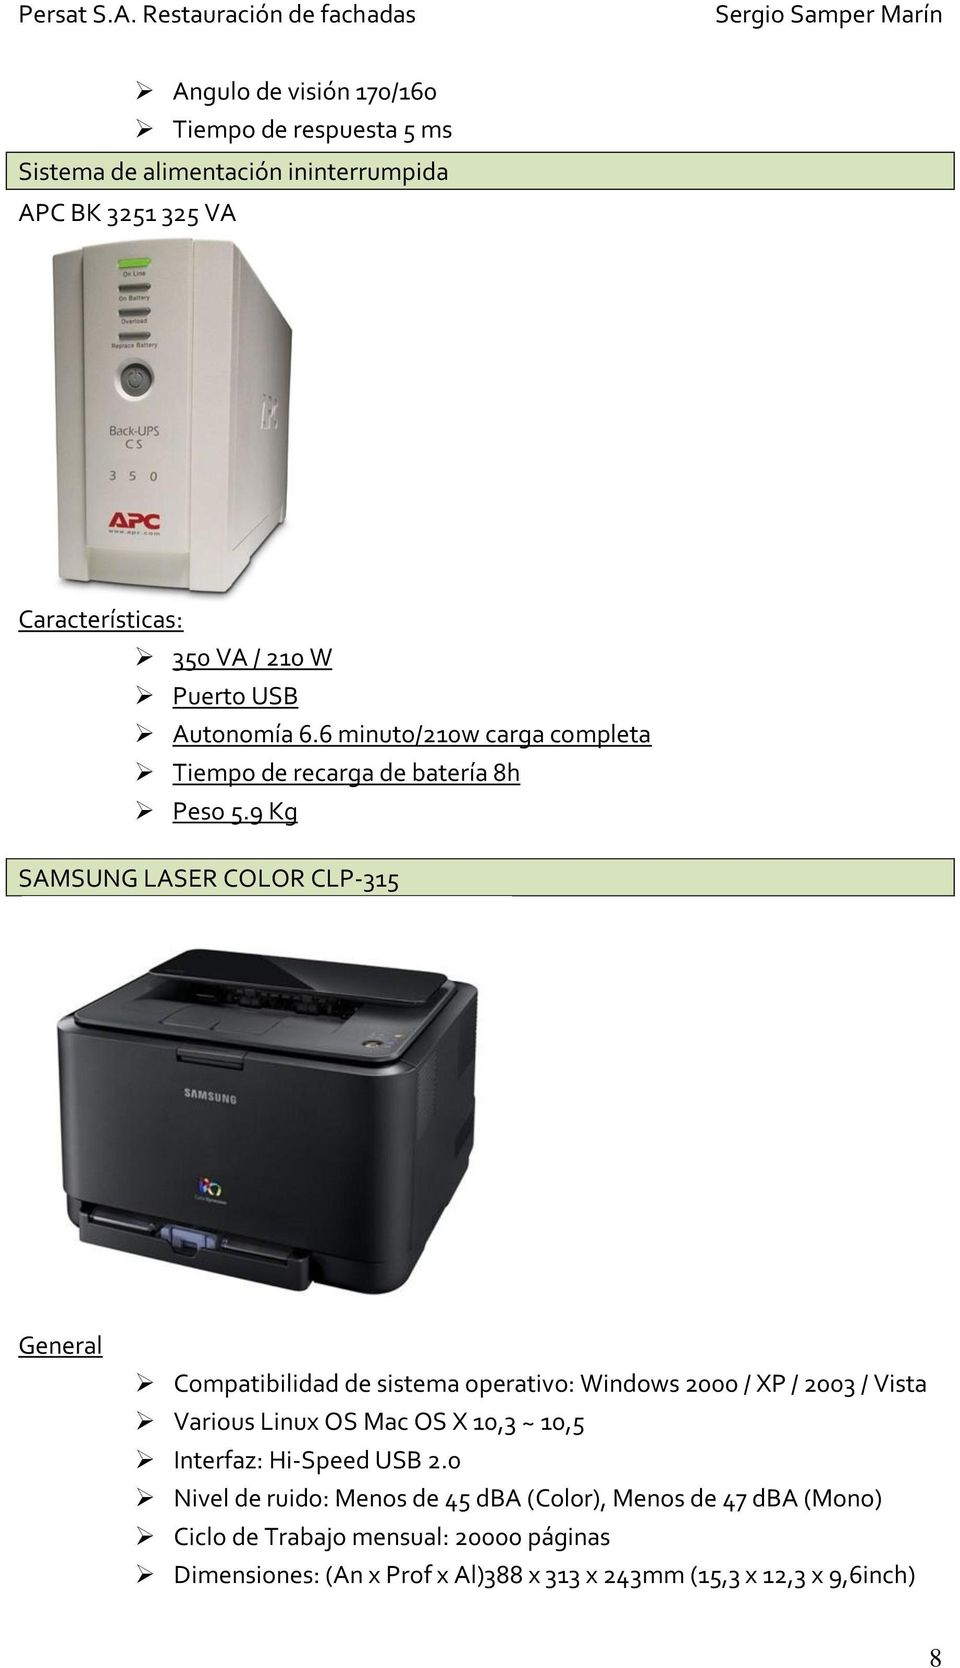 9 Kg SAMSUNG LASER COLOR CLP-315 General Compatibilidad de sistema operativo: Windows 2000 / XP / 2003 / Vista Various Linux OS Mac OS X 10,3 ~